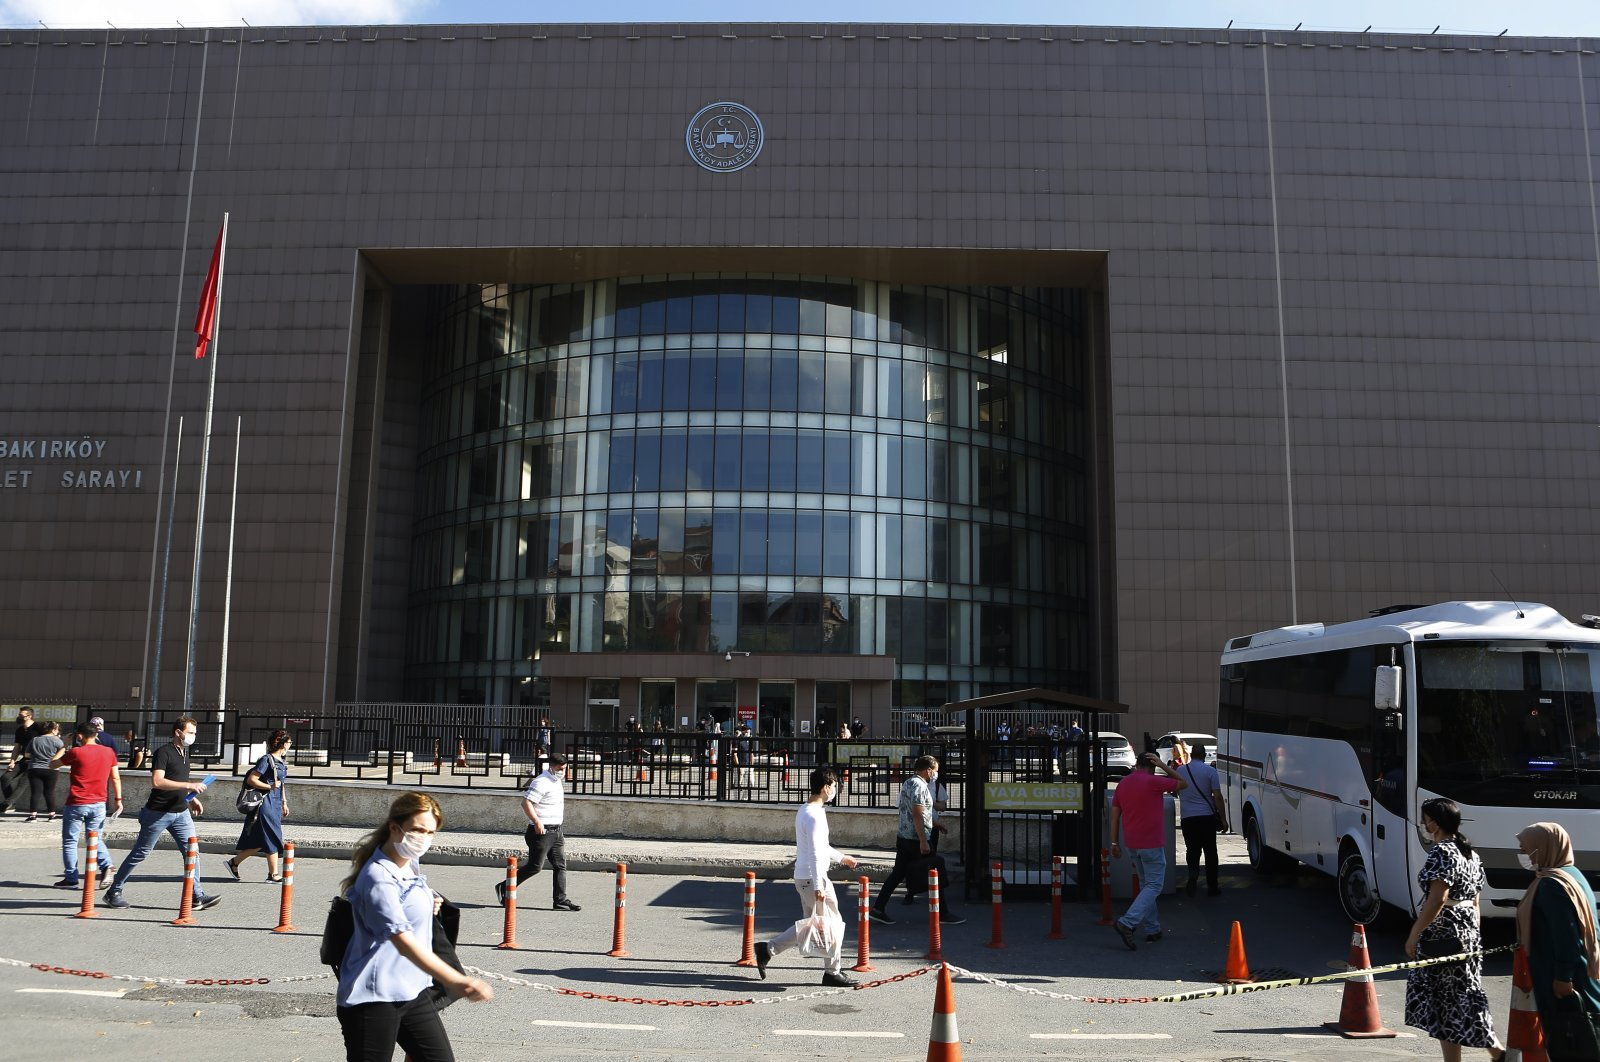 People walk outside a court building in Istanbul where the trial began for defendants accused of smuggling former Nissan Chairman Carlos Ghosn out of Japan to Lebanon, via Turkey, Friday, July 3, 2020. (AP Photo)